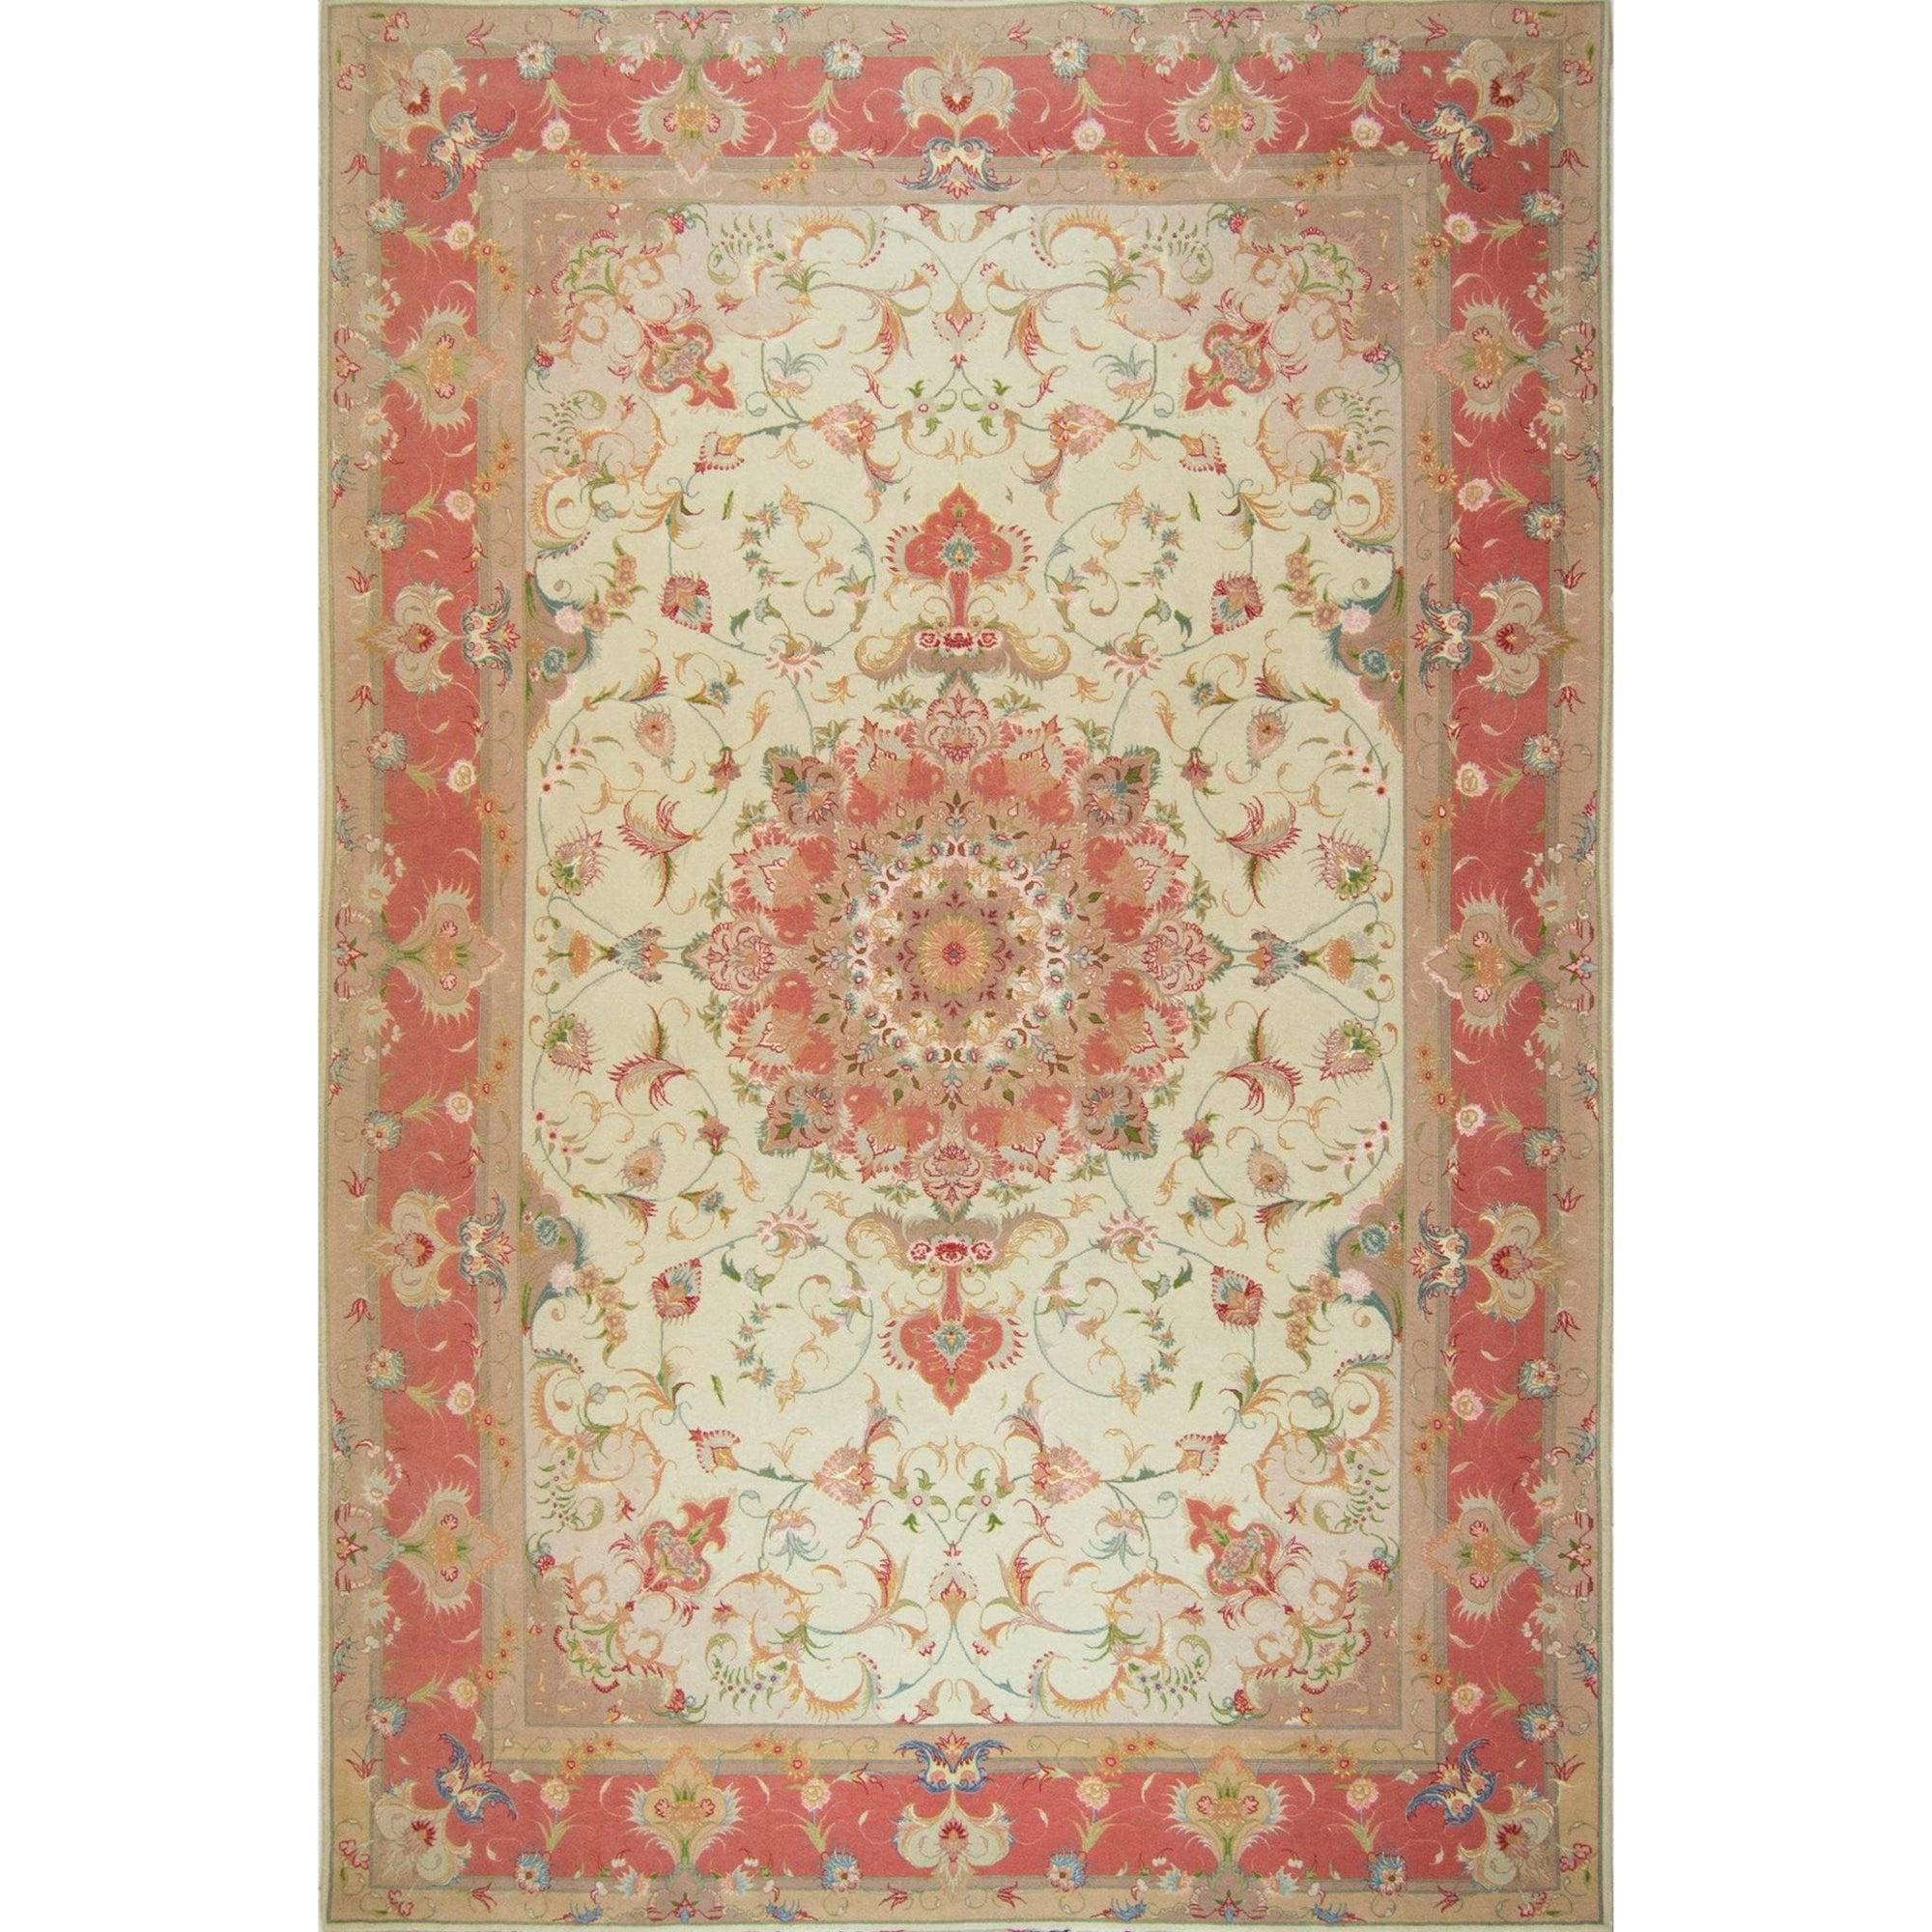 Super Fine Hand-knotted Persian Wool and Silk Tabriz Rug (SIGNED) 205cm x 305cm Persian-Rug | House-of-Haghi | NewMarket | Auckland | NZ | Handmade Persian Rugs | Hand Knotted Persian Rugs